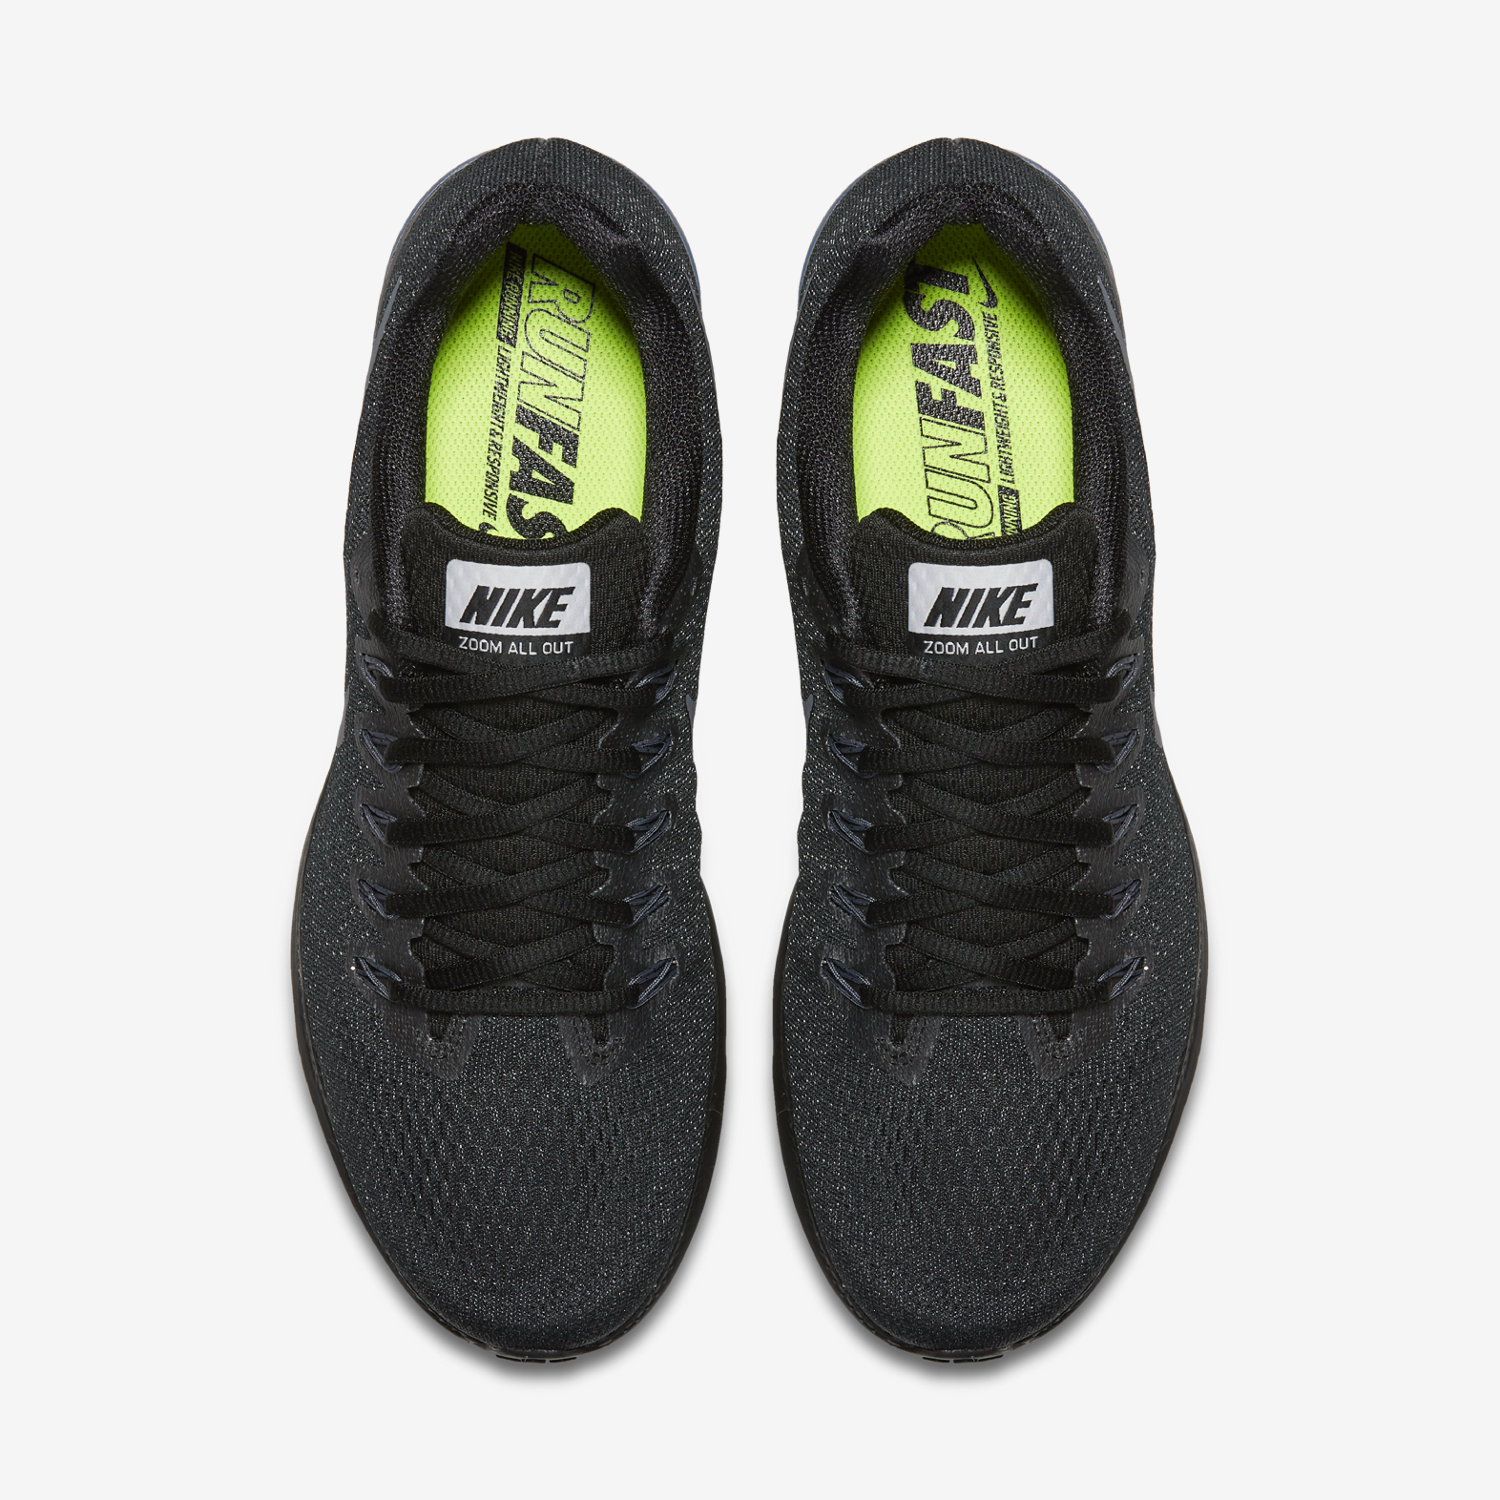 nike fr chaussure de running nike zoom all out low pour homme.